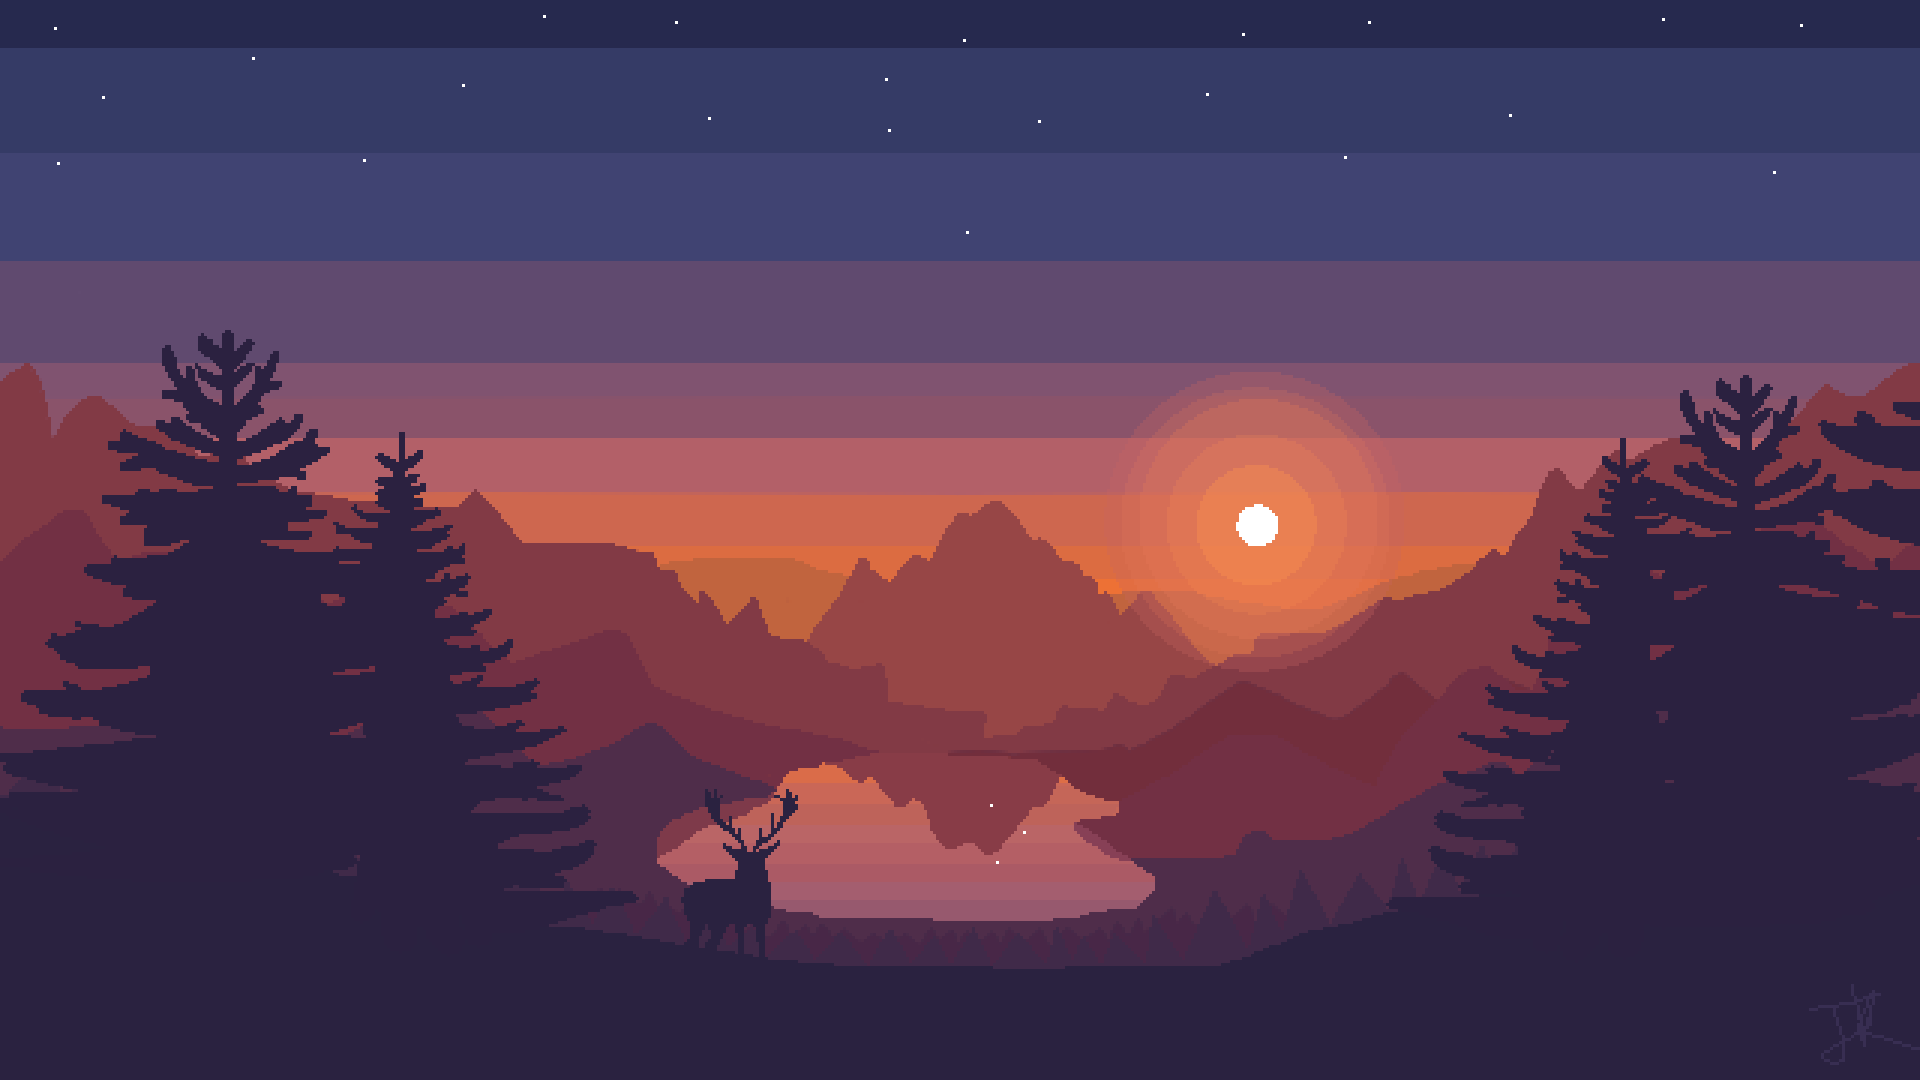 Firewatch Pixel Art 1920x1080 Need Iphone 6s Plus Wallpaper